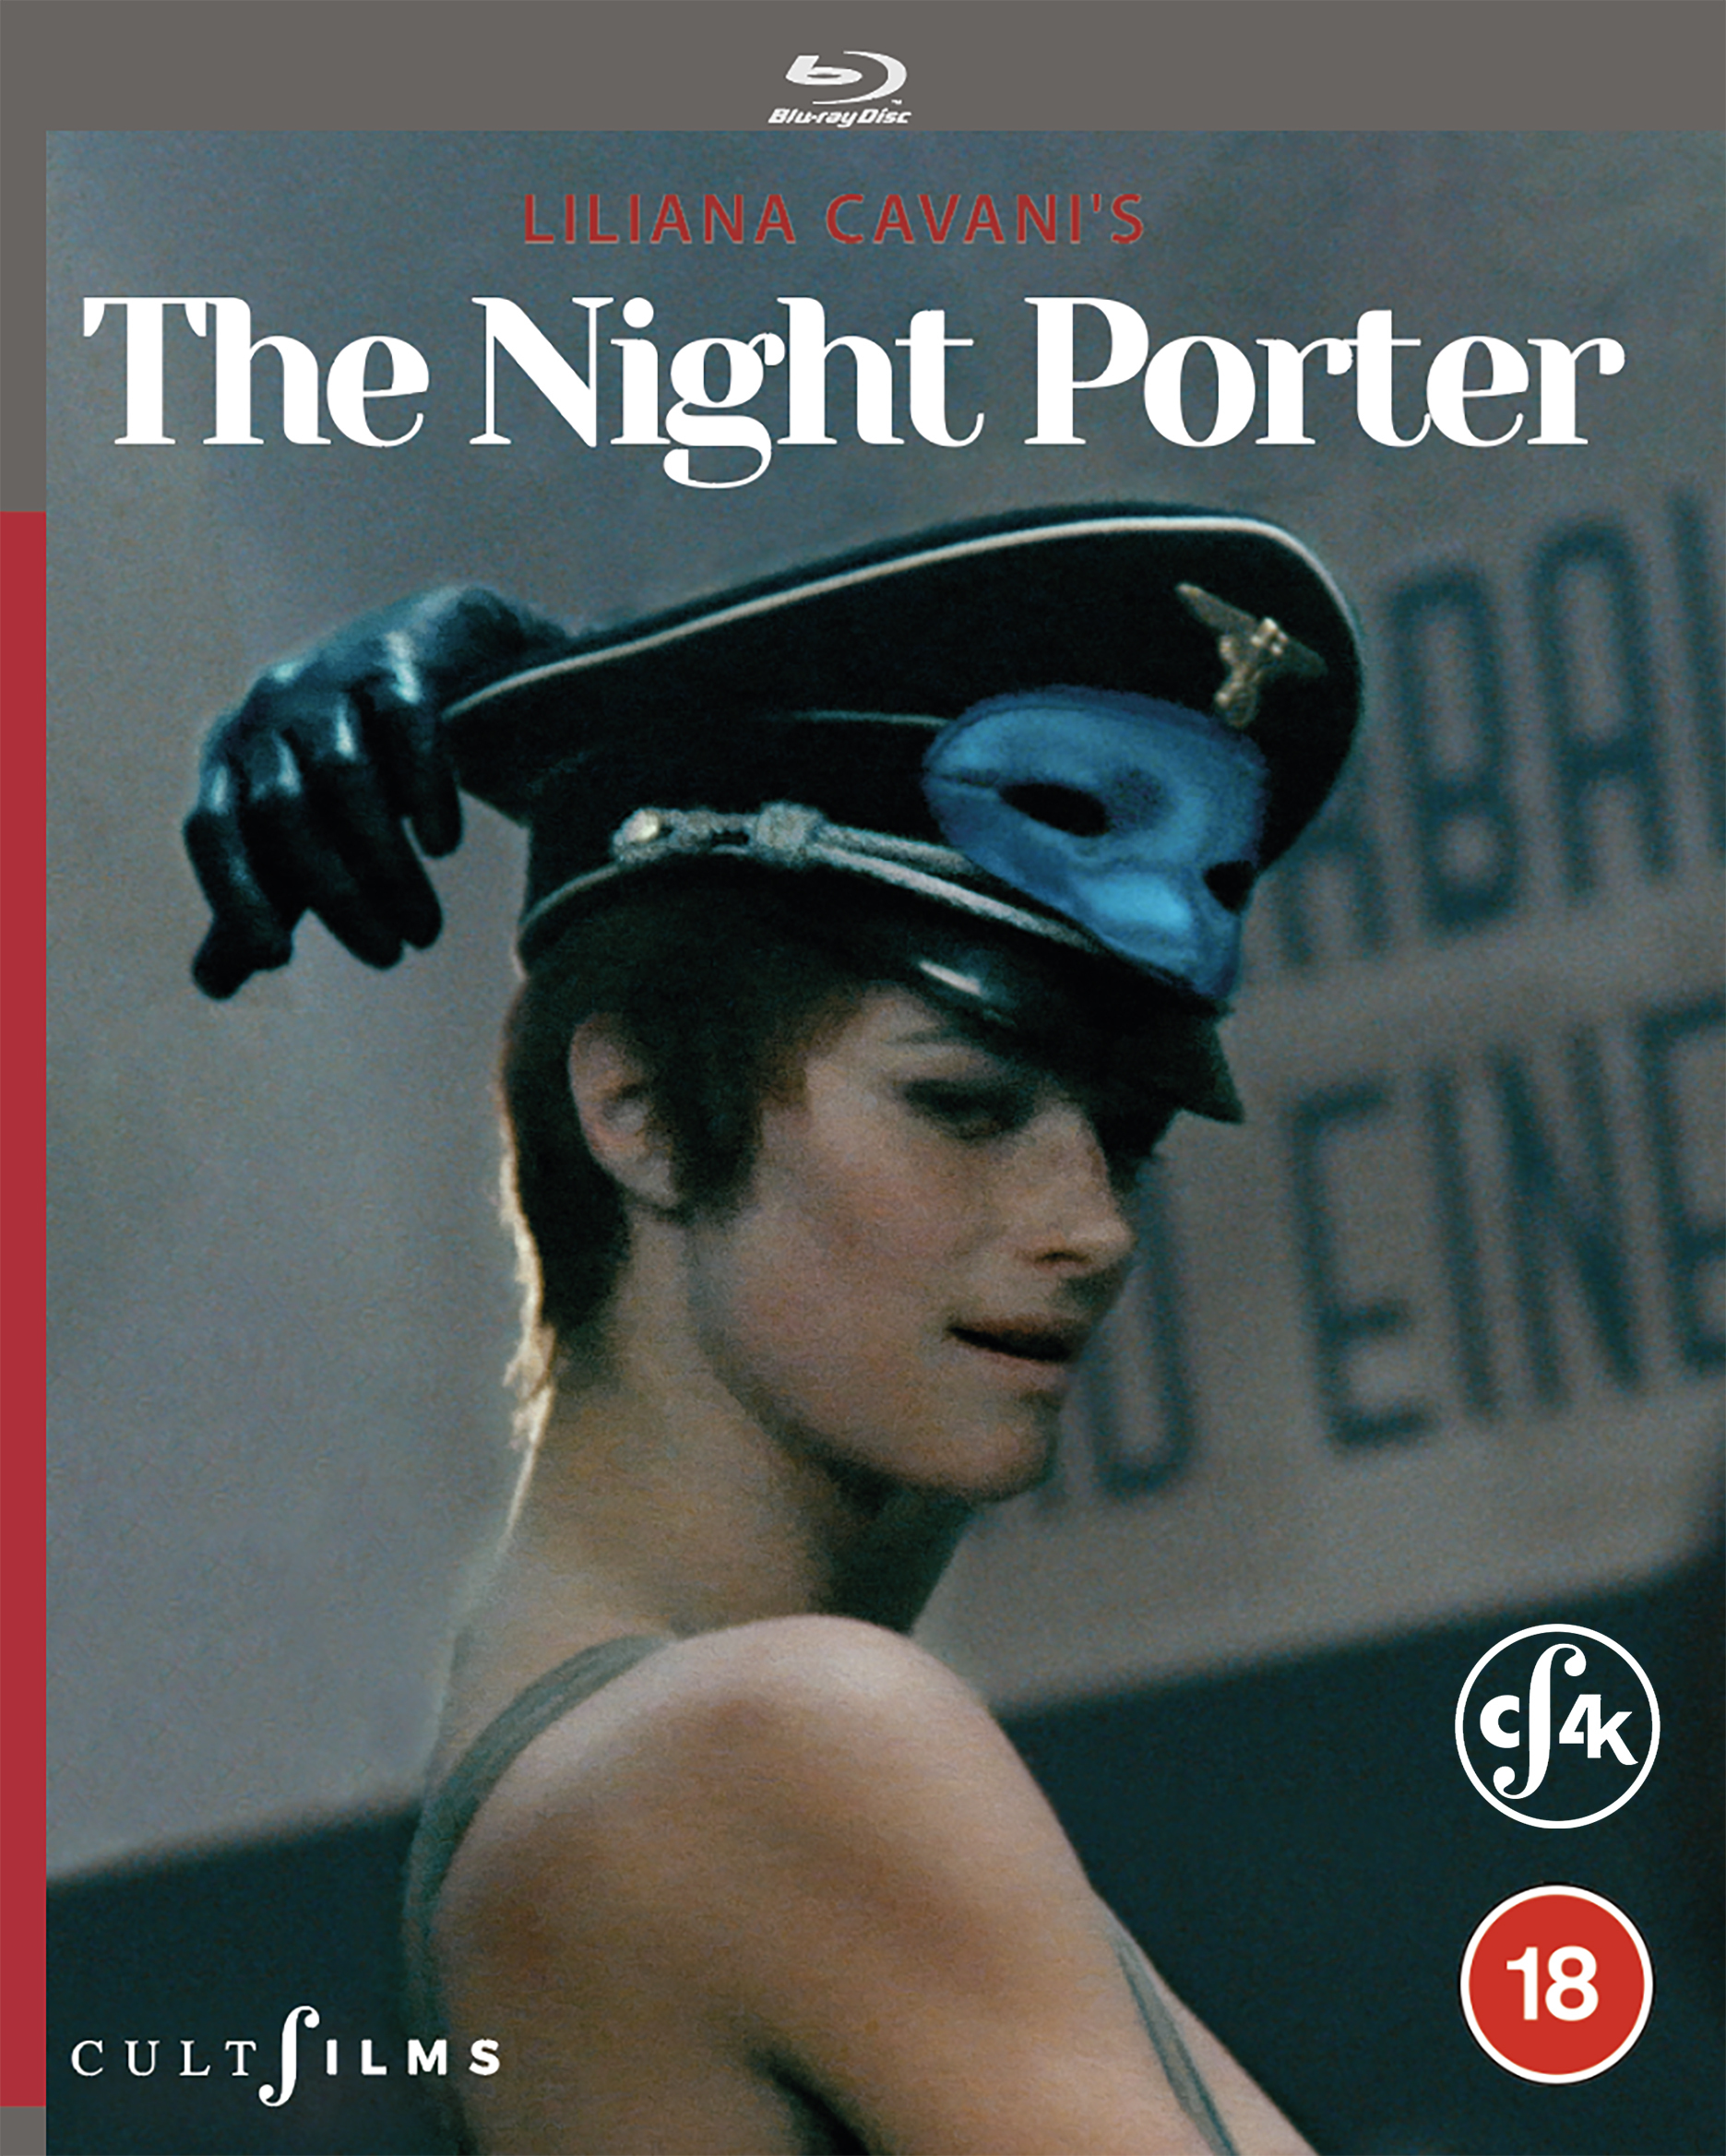 CultFilms presents Liliana Cavani's The Night Porter 4K restoration on Blu-ray and Digital 30th November